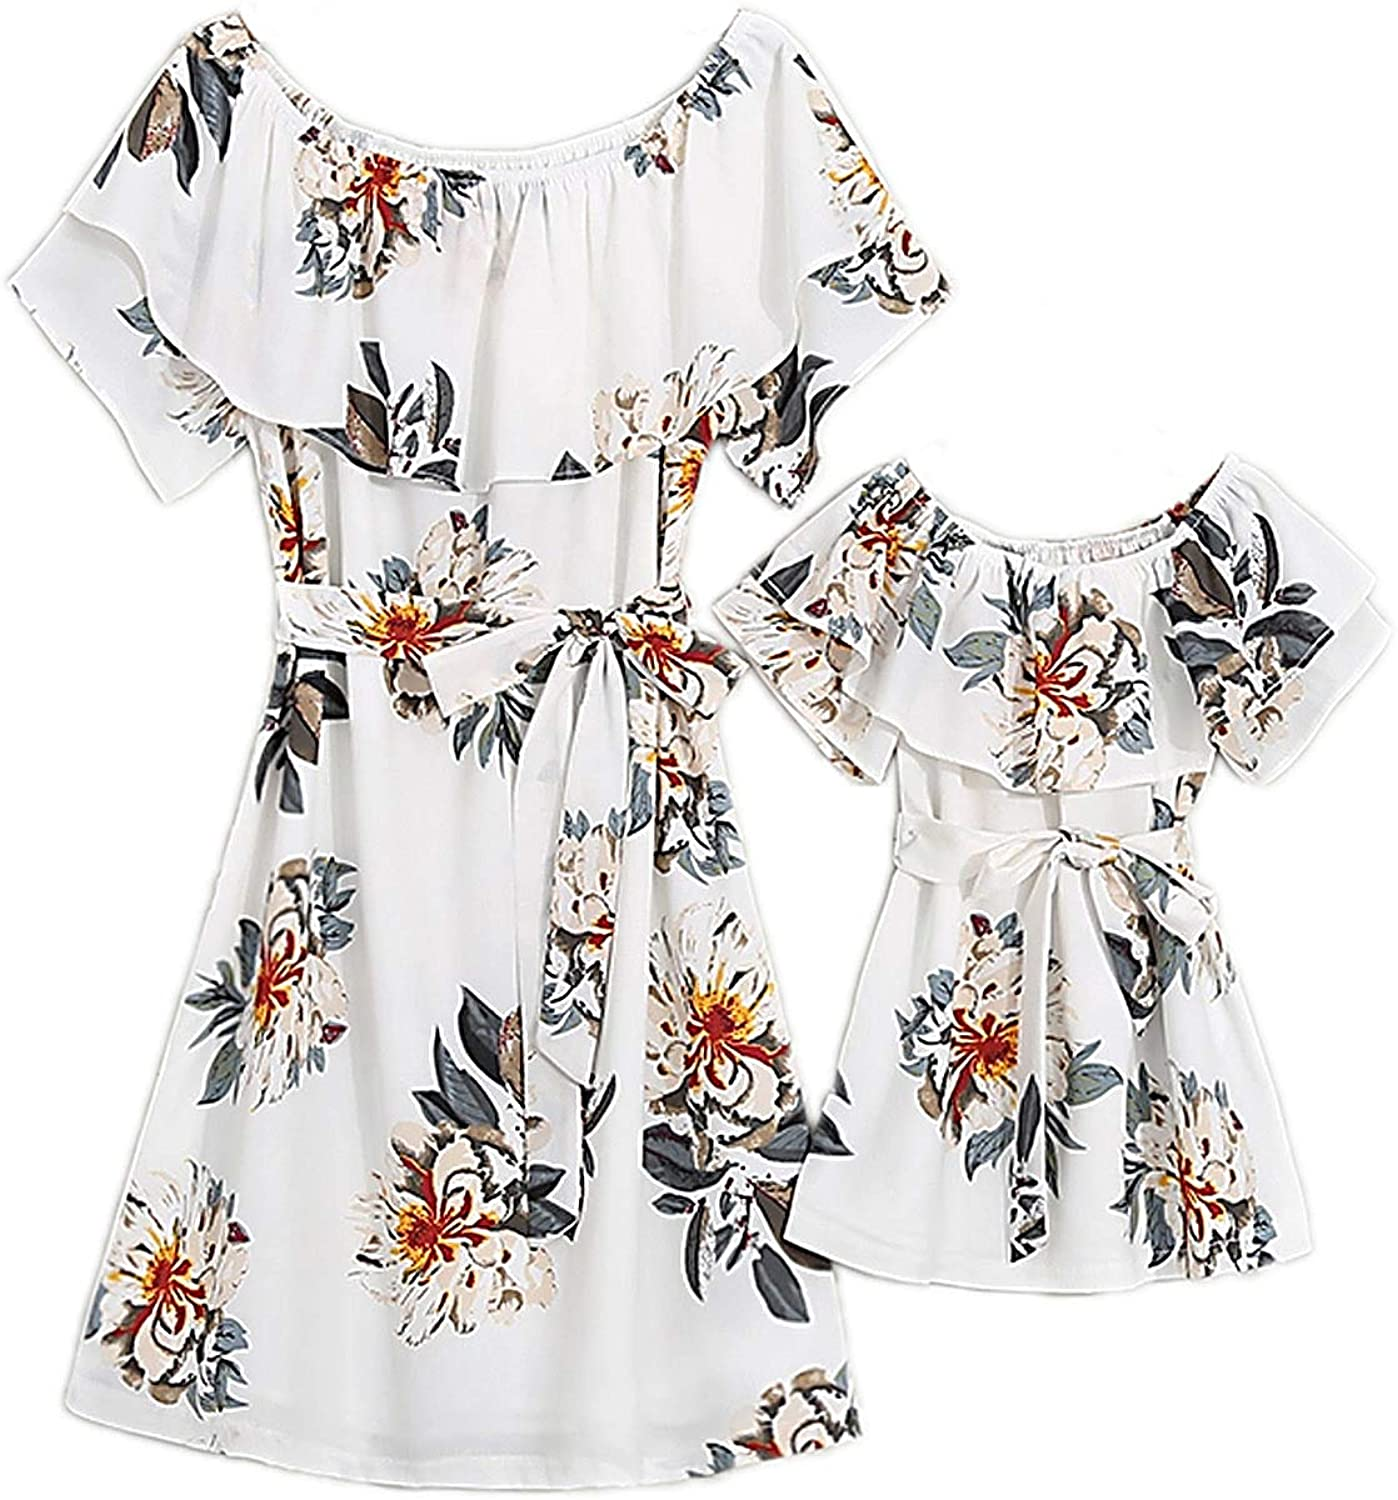 PopReal Mommy and Me Dresses Chiffon Max 51% OFF low-pricing Bowknot Floral Printed Ruff